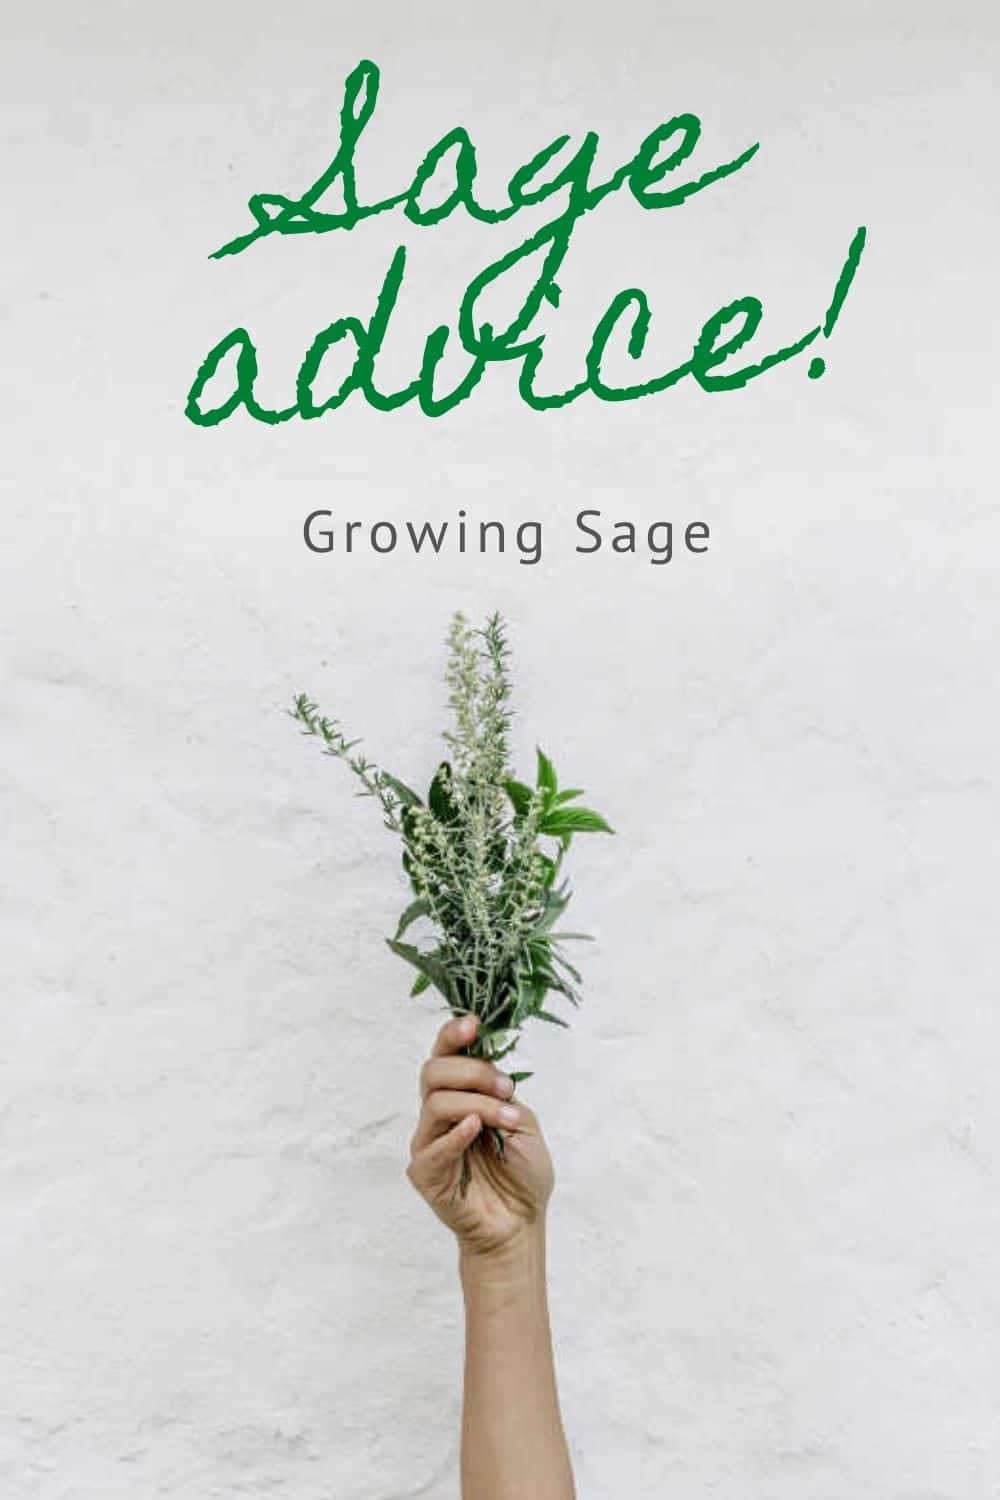 photo of a hand holding growing sage